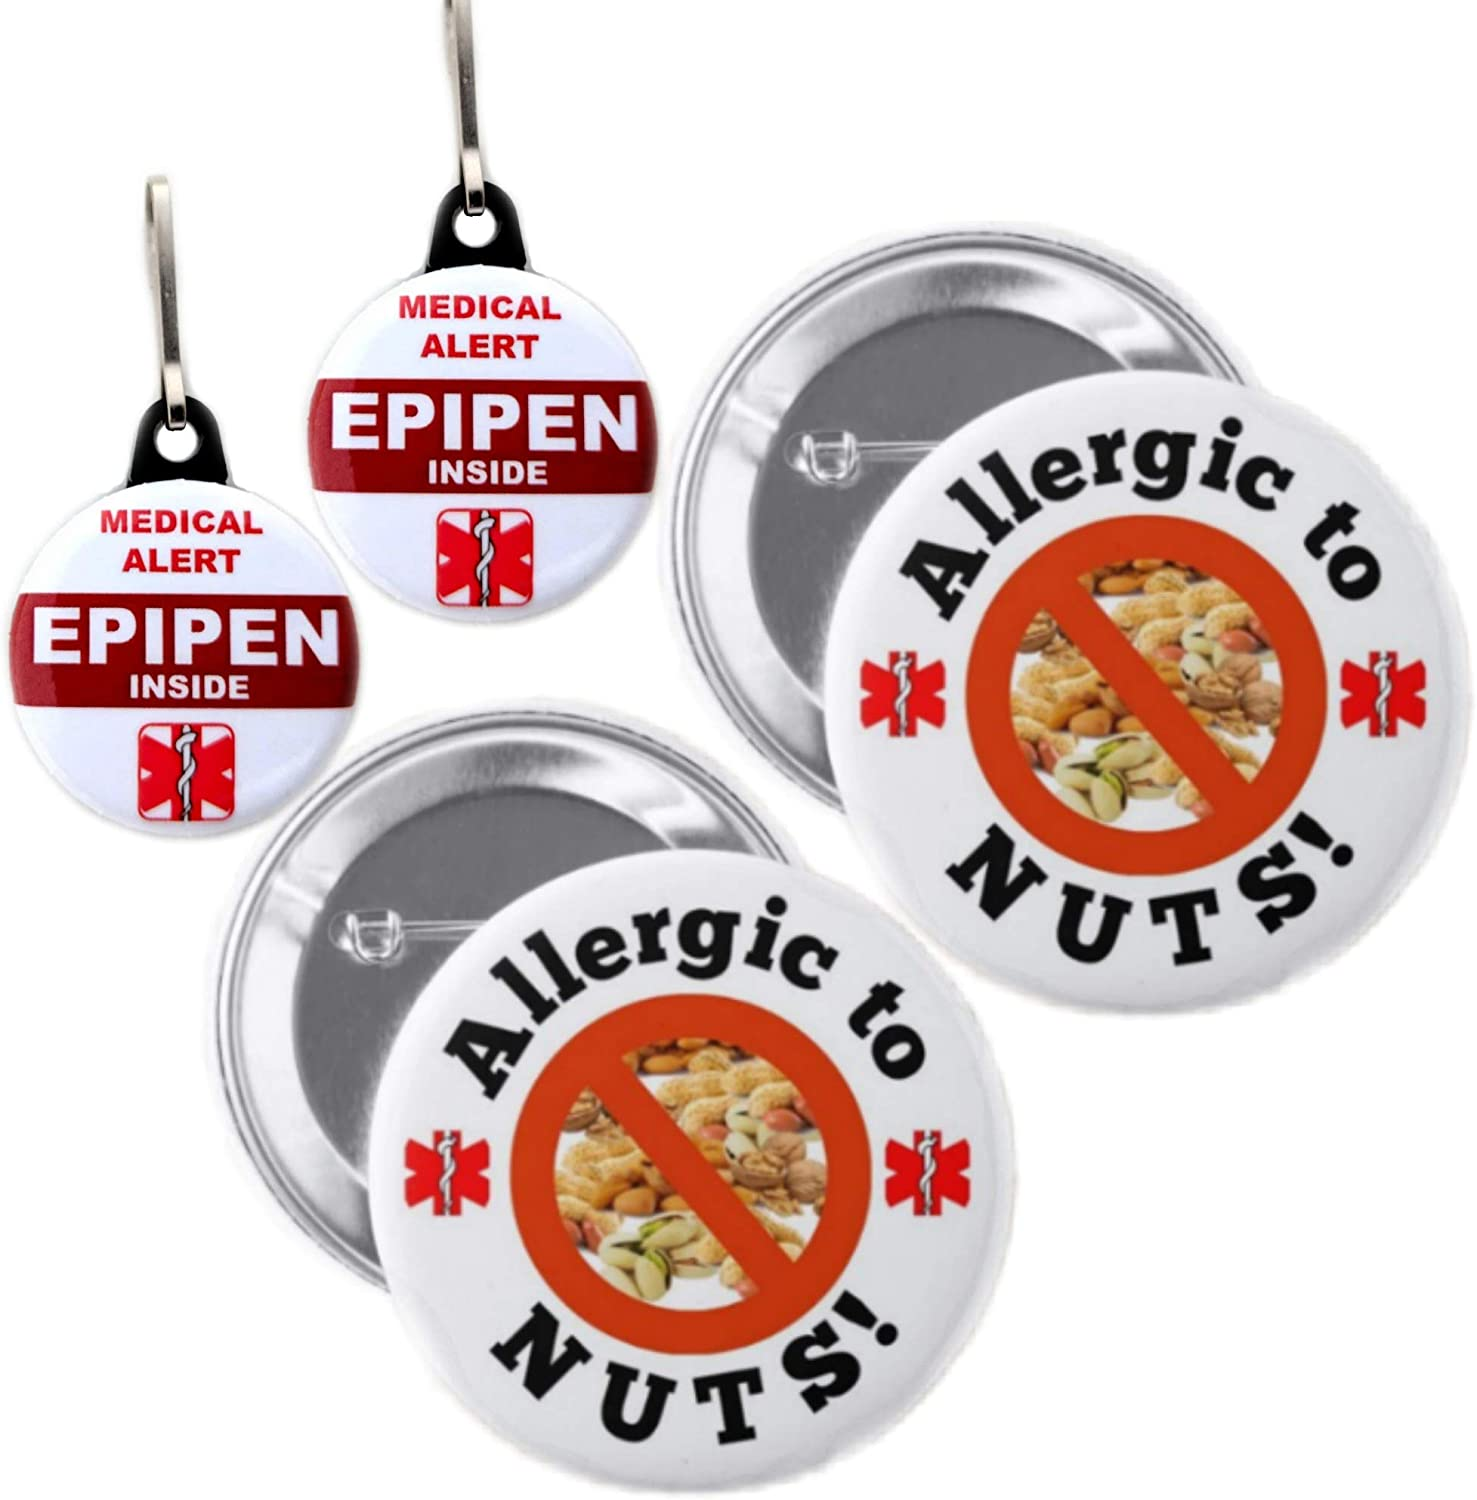 Allergic to Nuts Button Pin 2.25 inches 2pcs and Medical Alert Epipen Inside Bag Tag Set 1.25 inches 2pcs